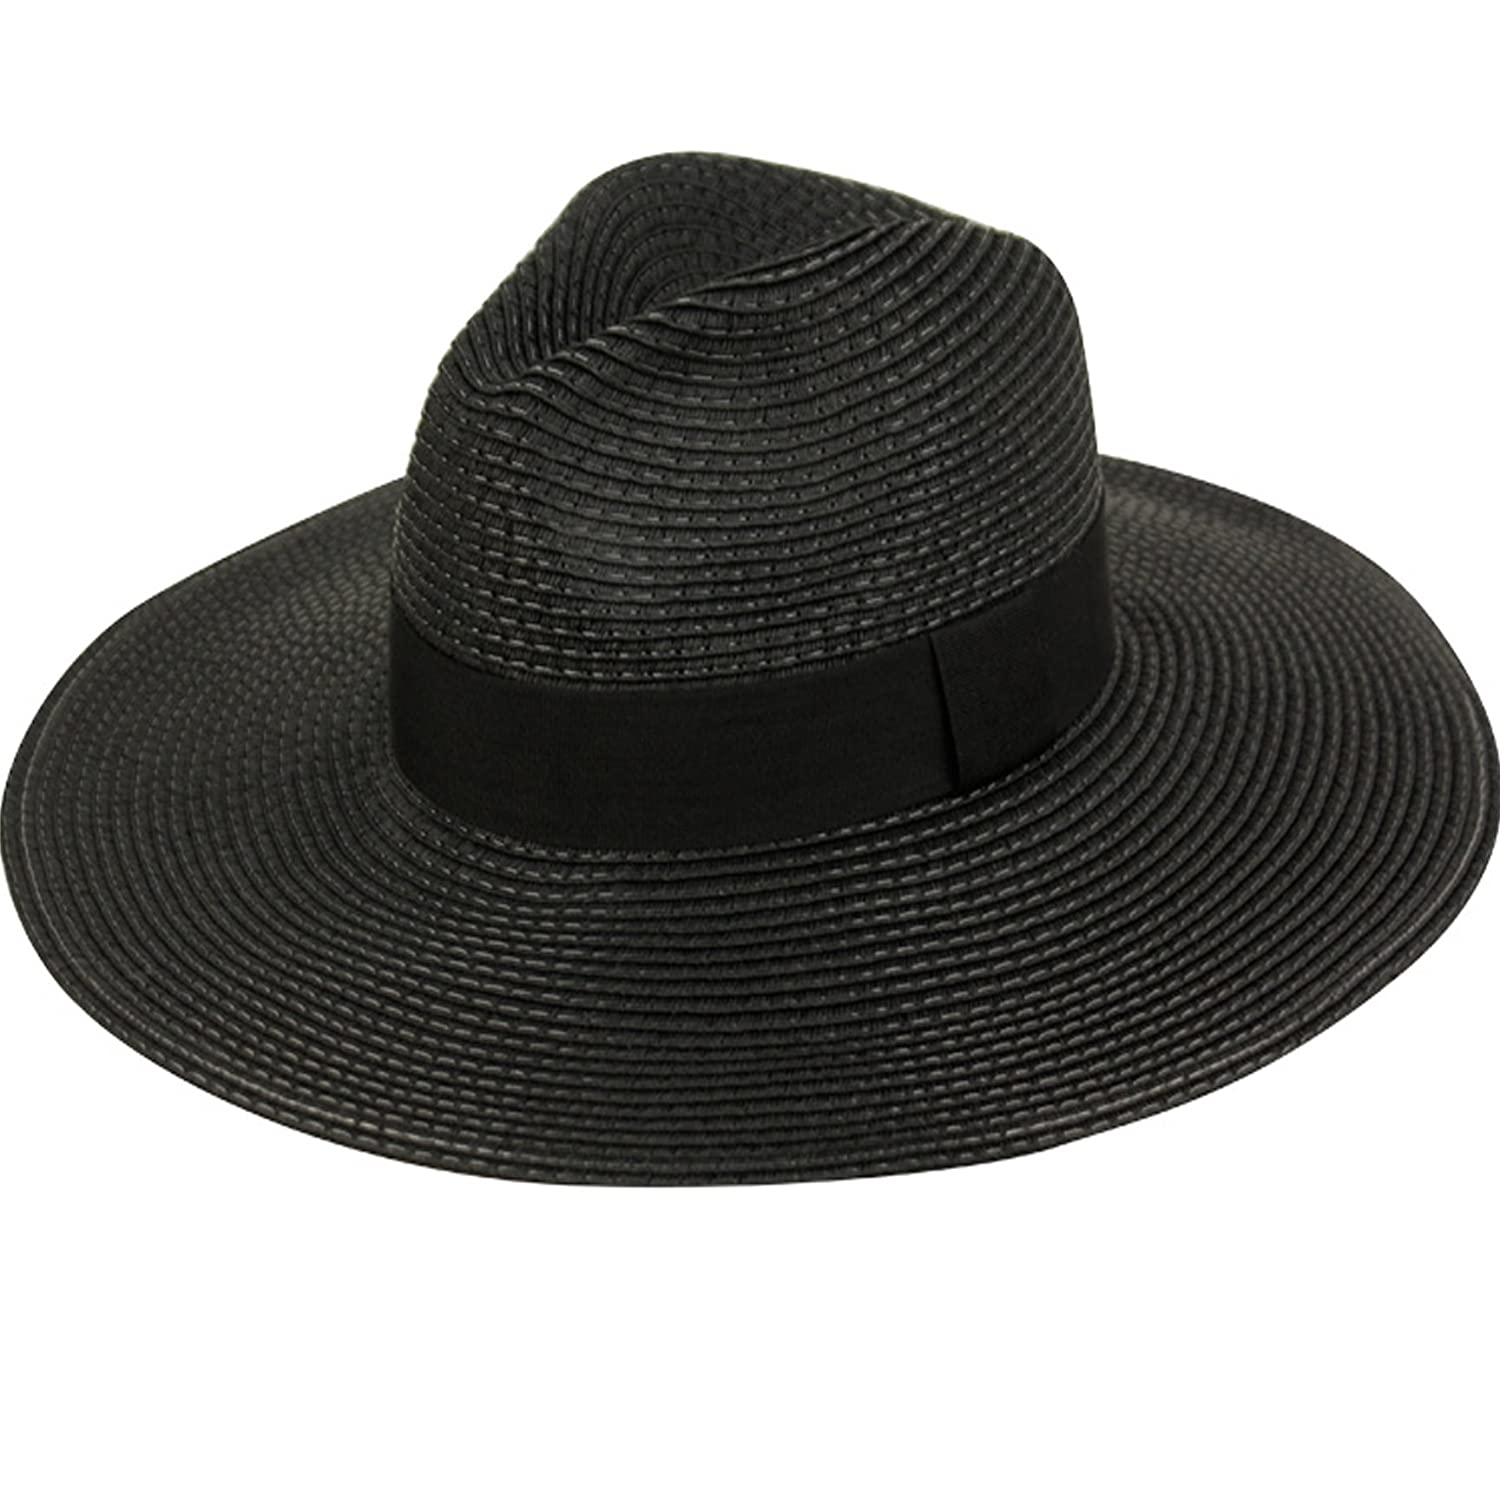 9c256177dc9a2 Summer Classic Straw Panama Fedora Sun Hat In Solid Color W  Black  Grosgrain Band Trim (BLACK) at Amazon Women s Clothing store